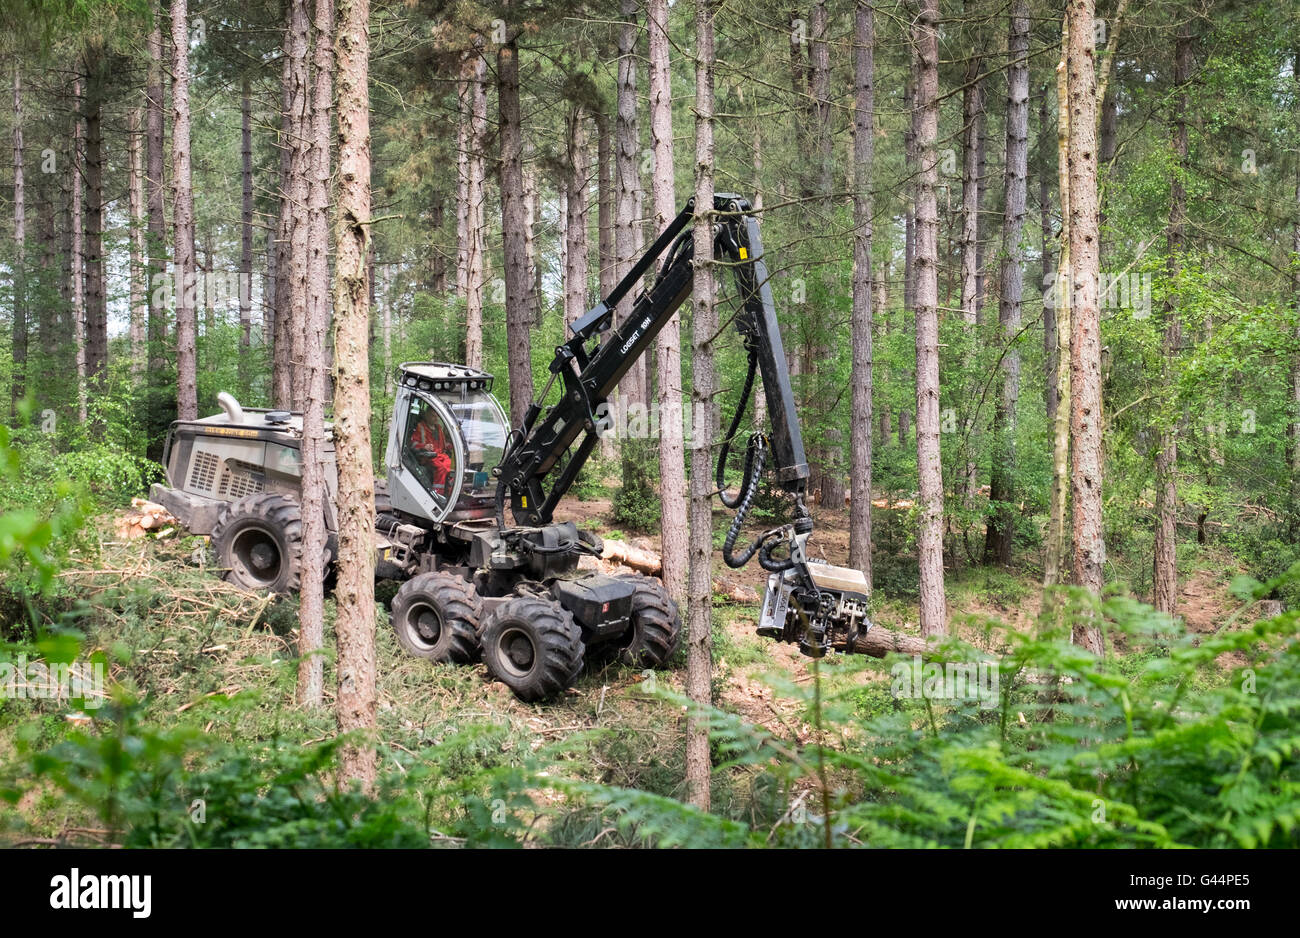 forest machine stockfotos forest machine bilder alamy. Black Bedroom Furniture Sets. Home Design Ideas